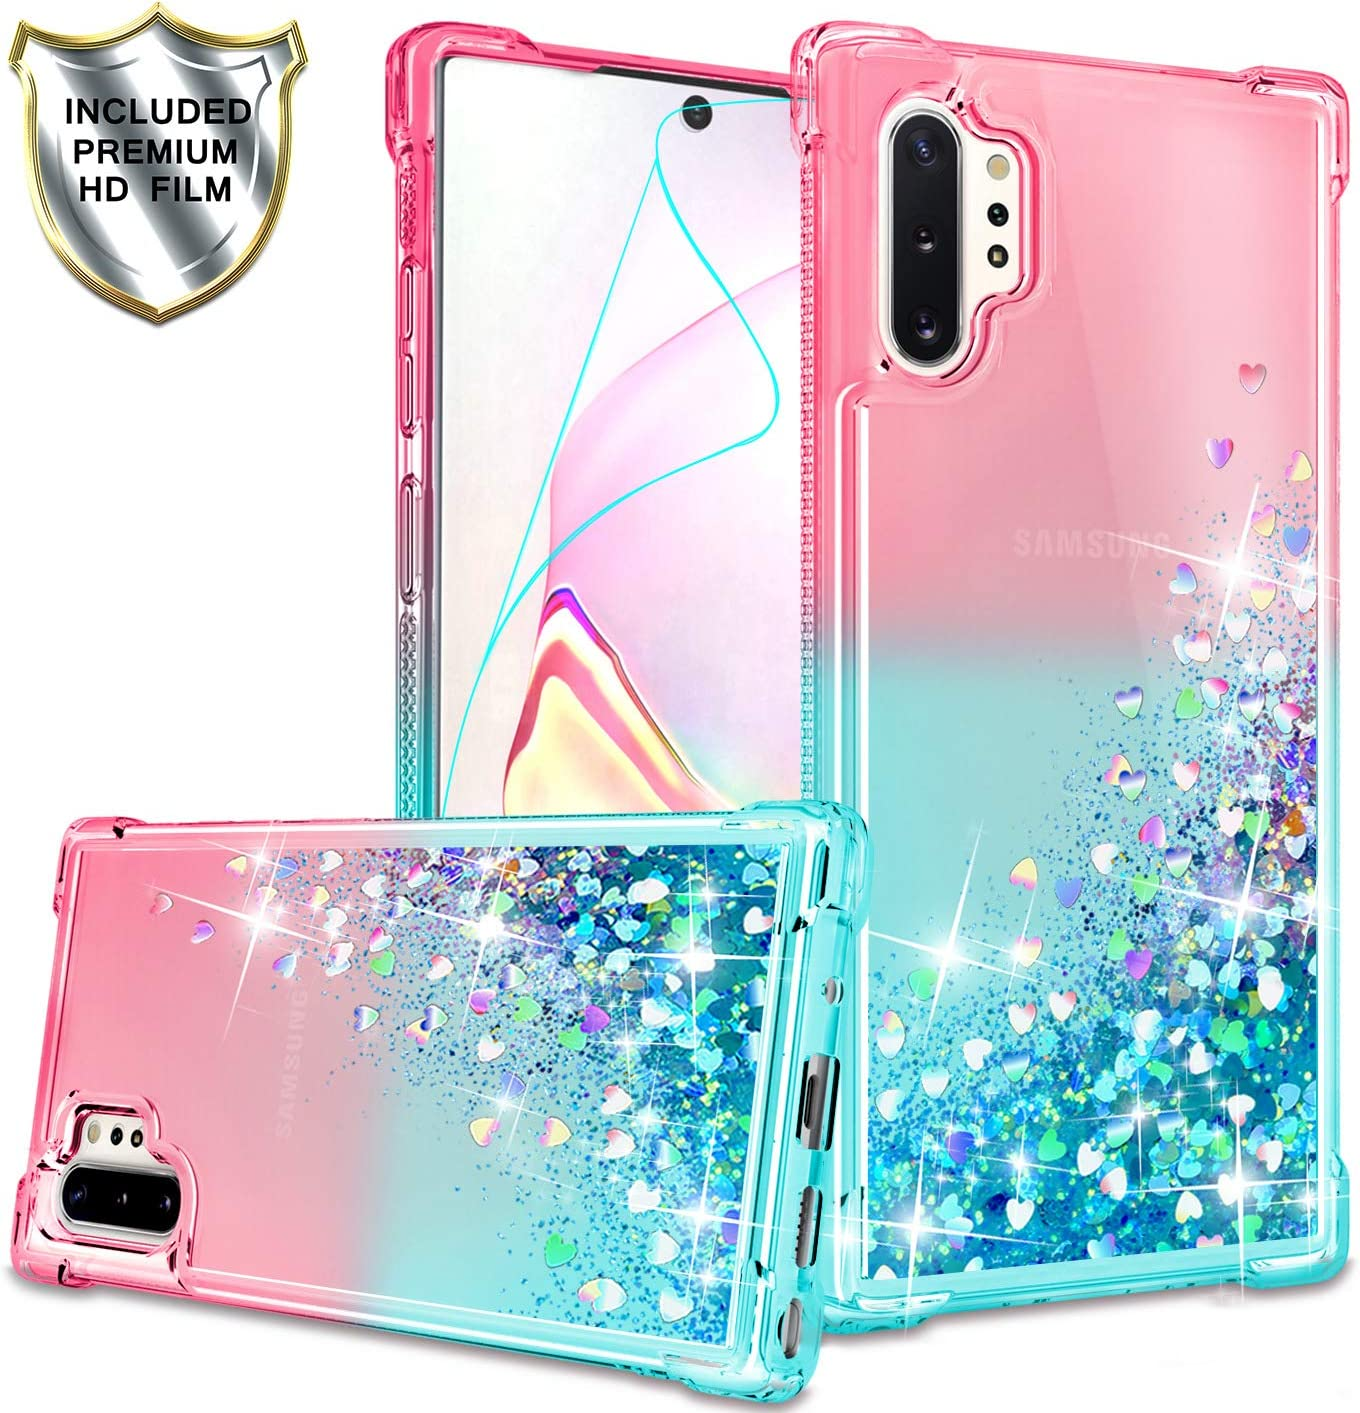 Gritup Galaxy Note 10 Plus Case, Galaxy Note 10+ 5G Case with HD Screen Protector for Girls Women, Cute Clear Gradient Glitter Liquid TPU Slim Phone Case for Samsung Galaxy Note 10 Plus Pink/Teal